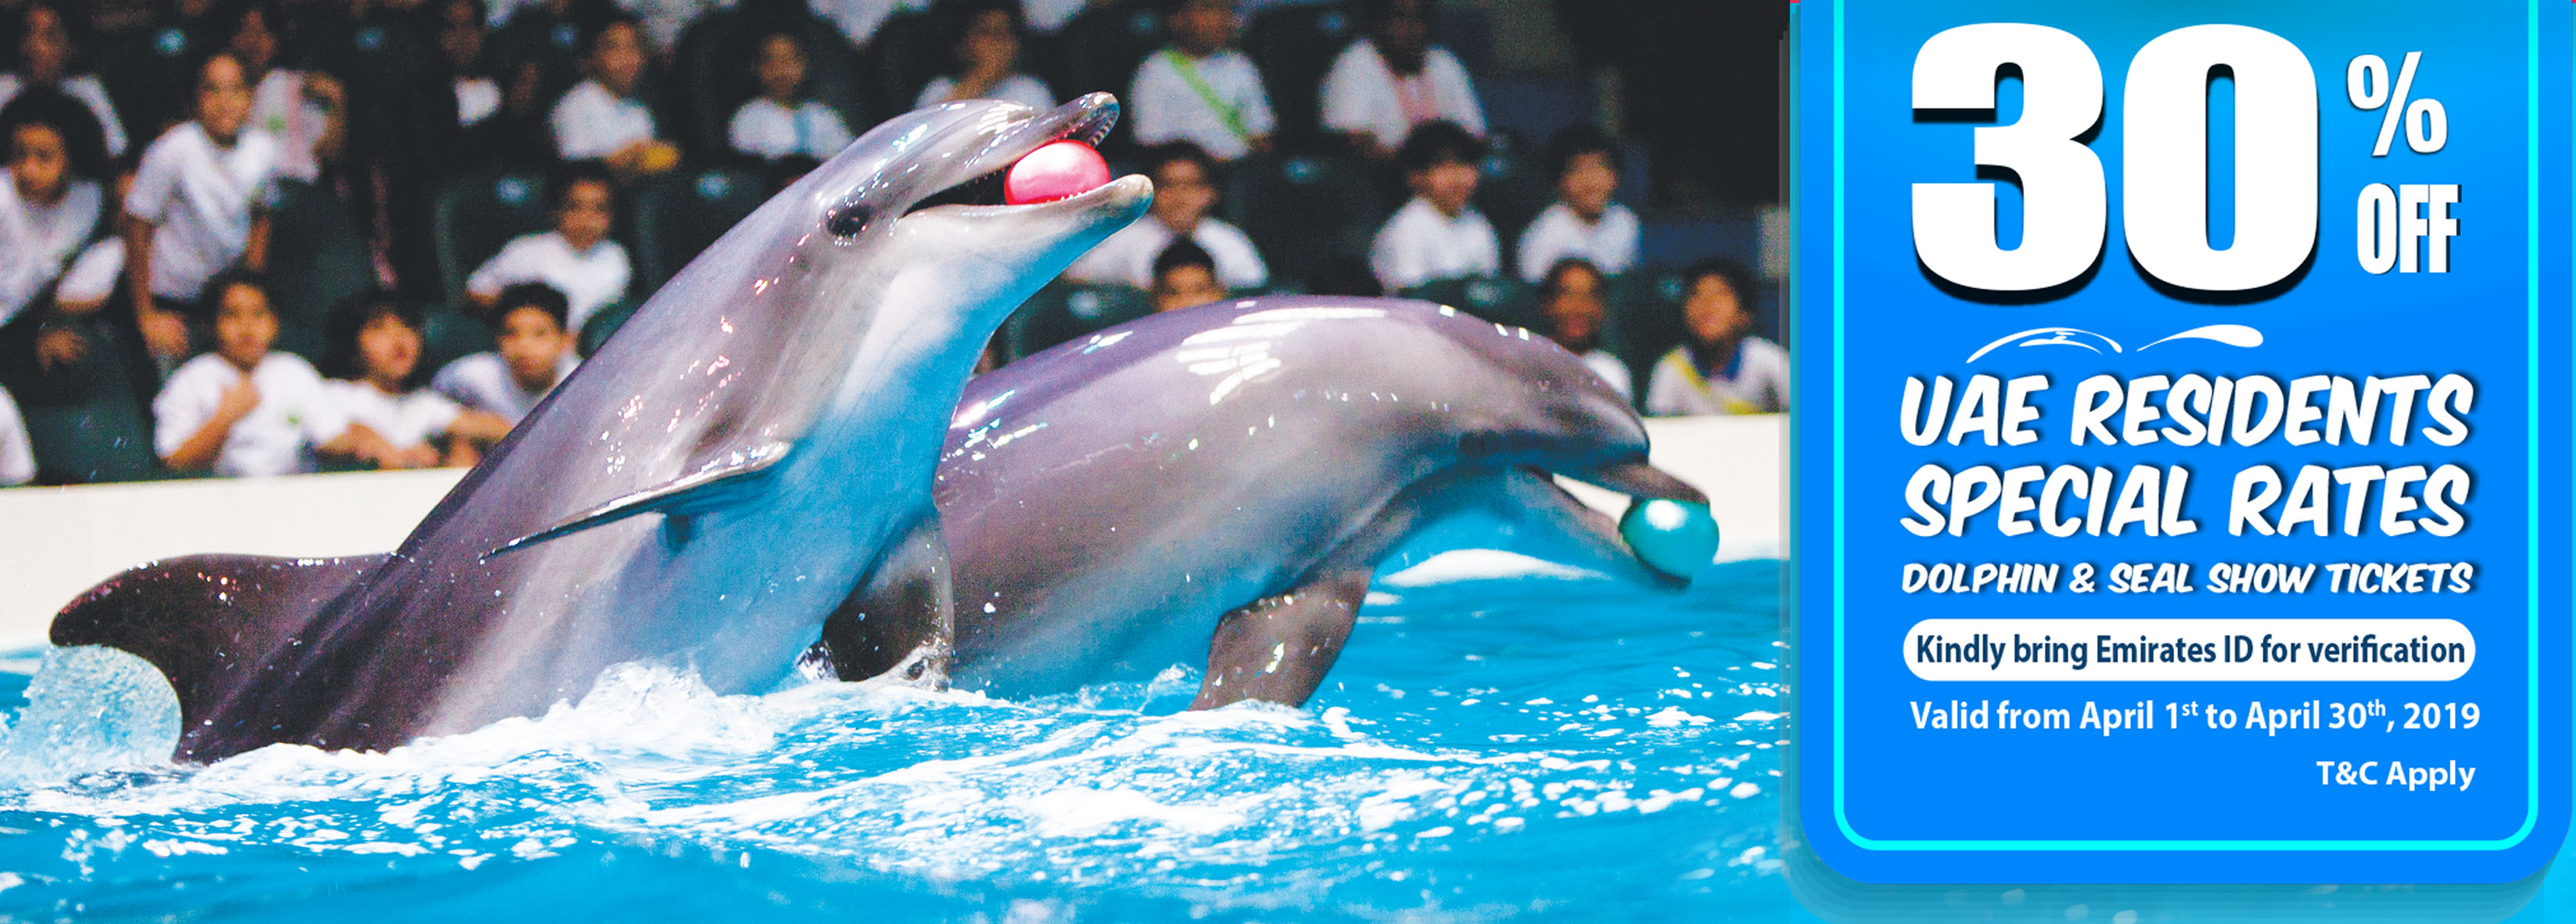 dolphin show uae residents